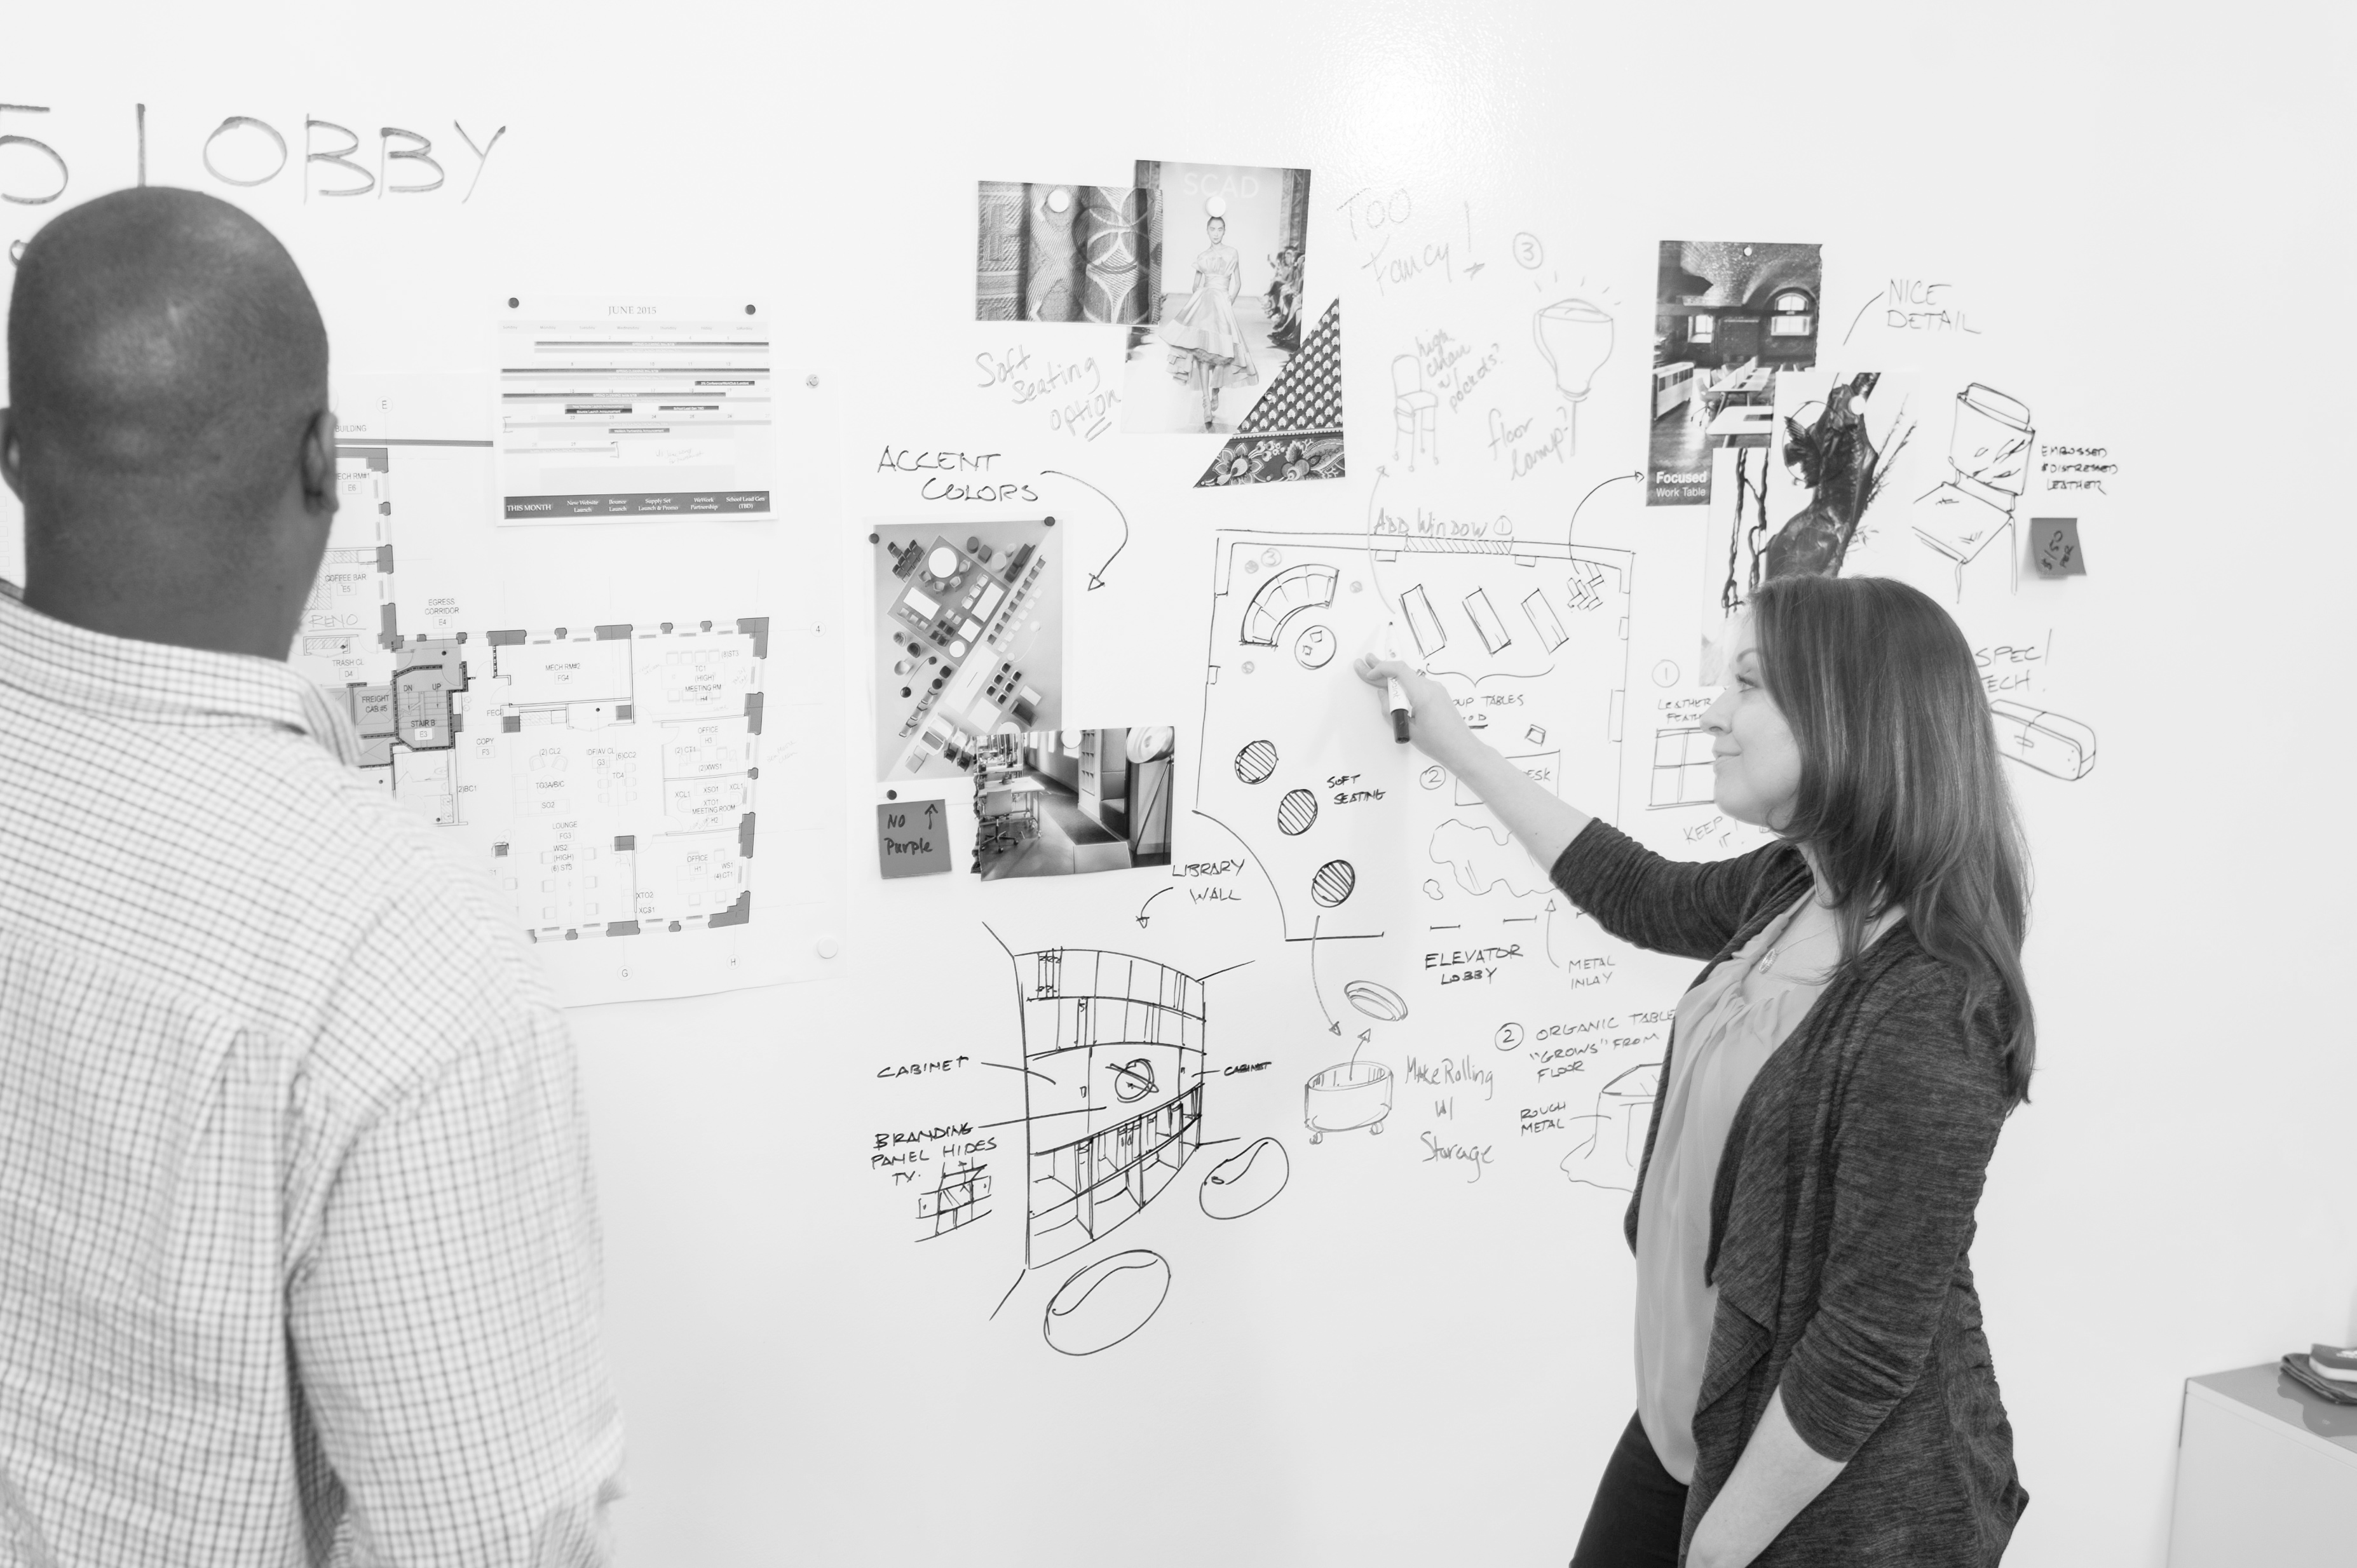 Woman and man brainstorming with sketches on office walls